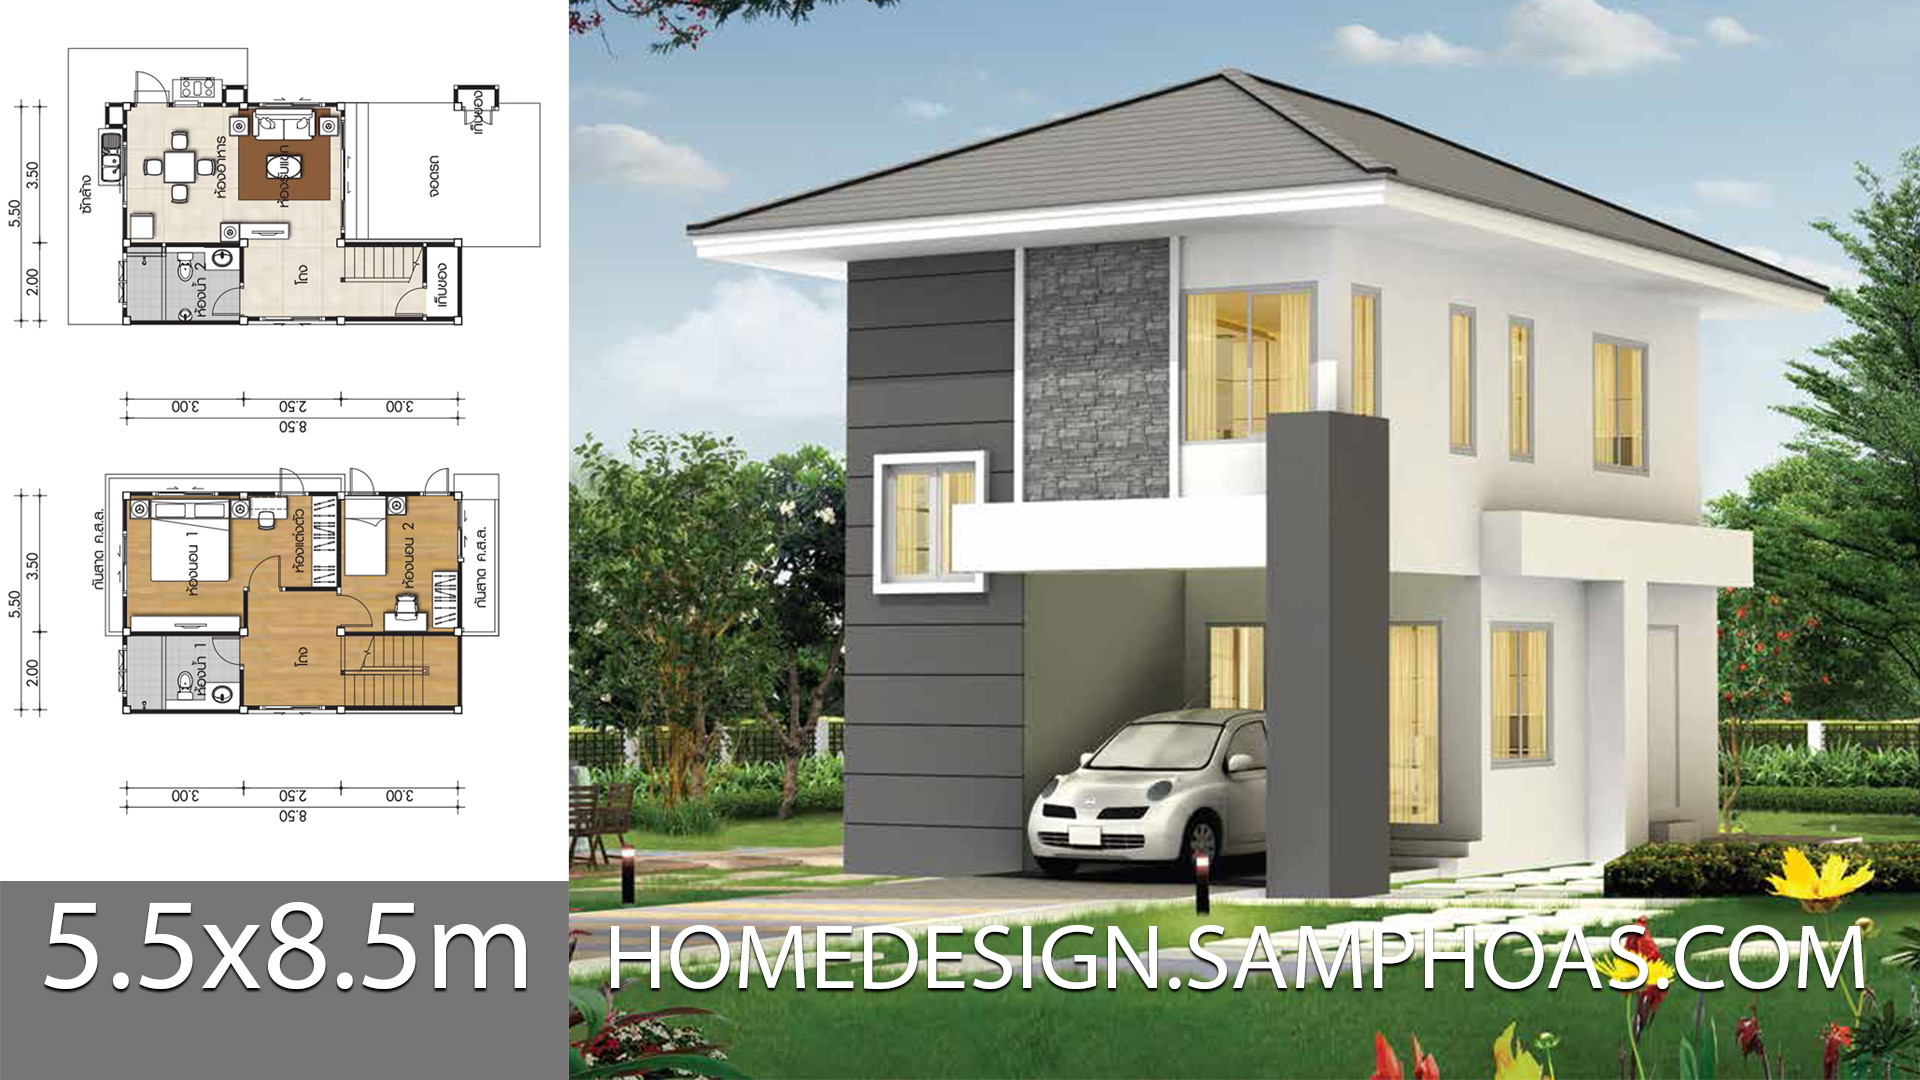 Small house plans 5.5x8.5m with 2 bedrooms - Home Ideas